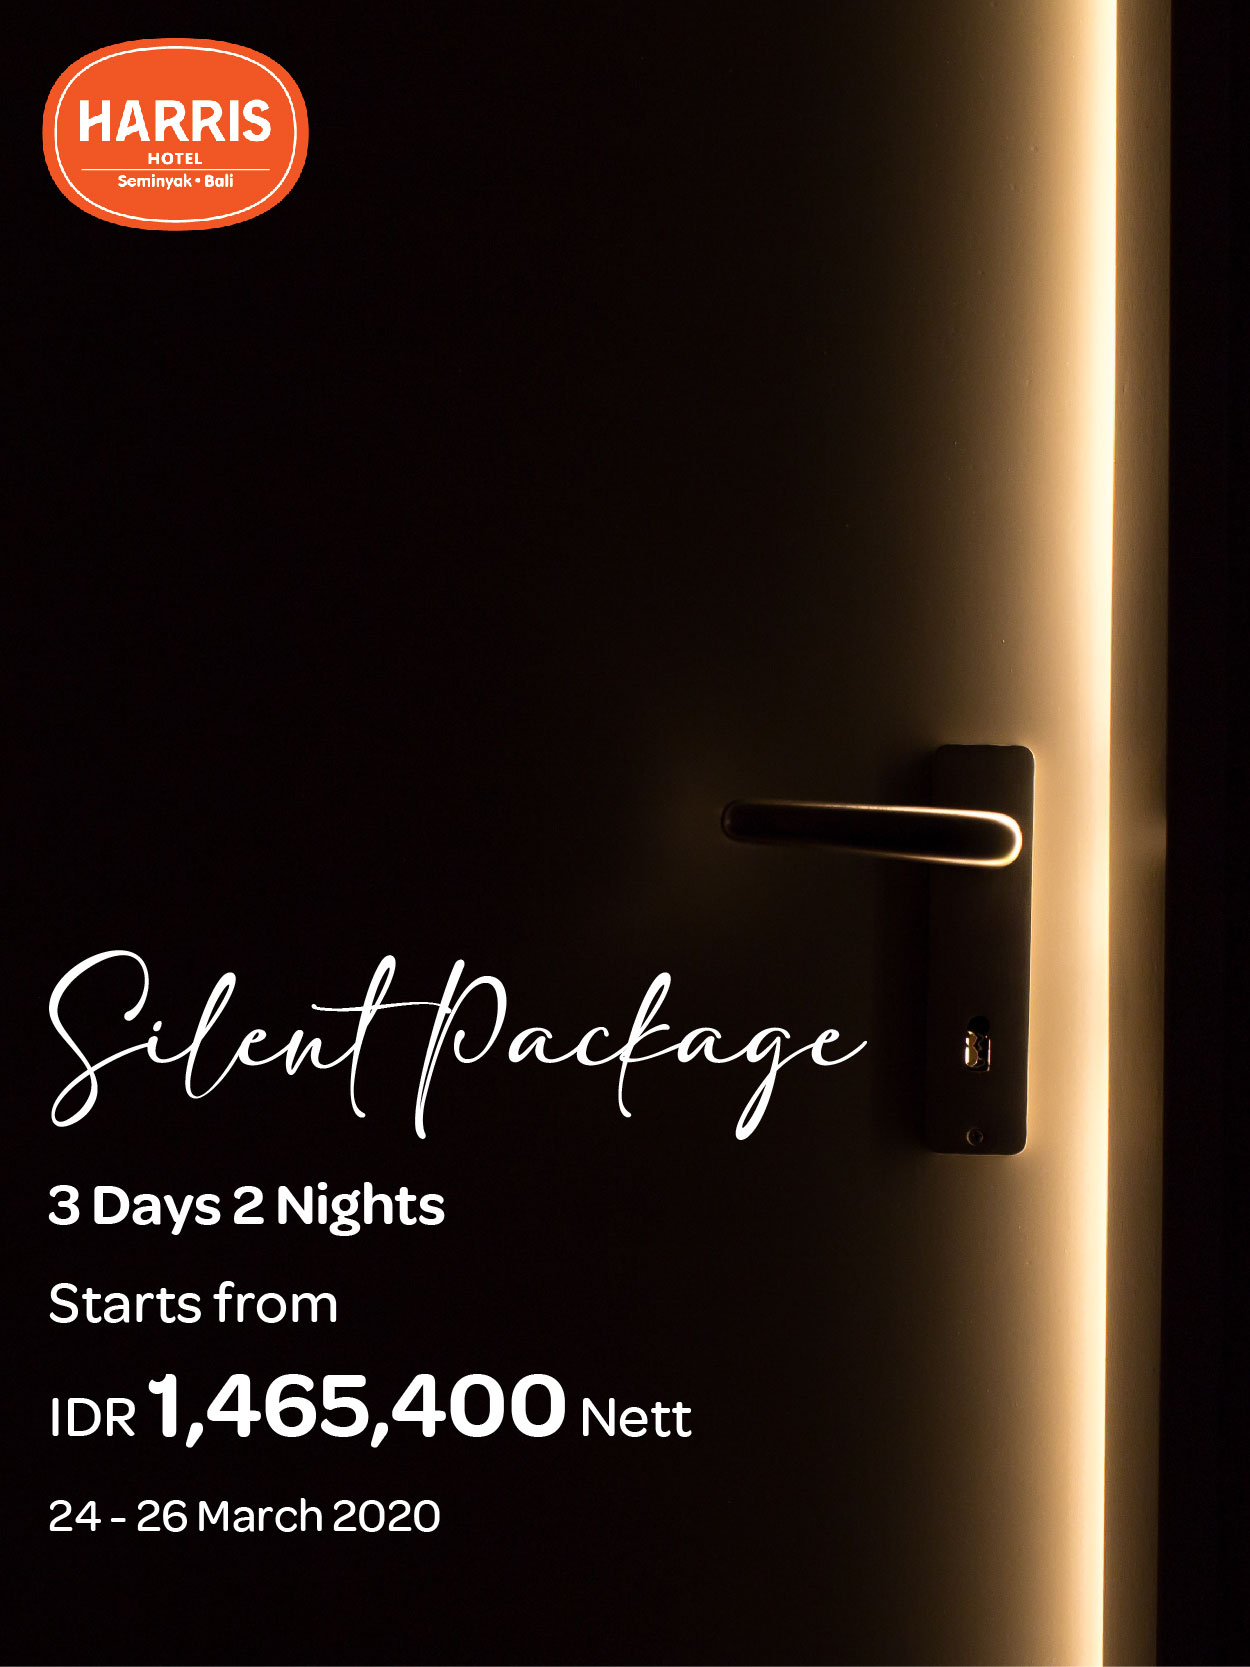 Harris Seminyak Silent Day Package